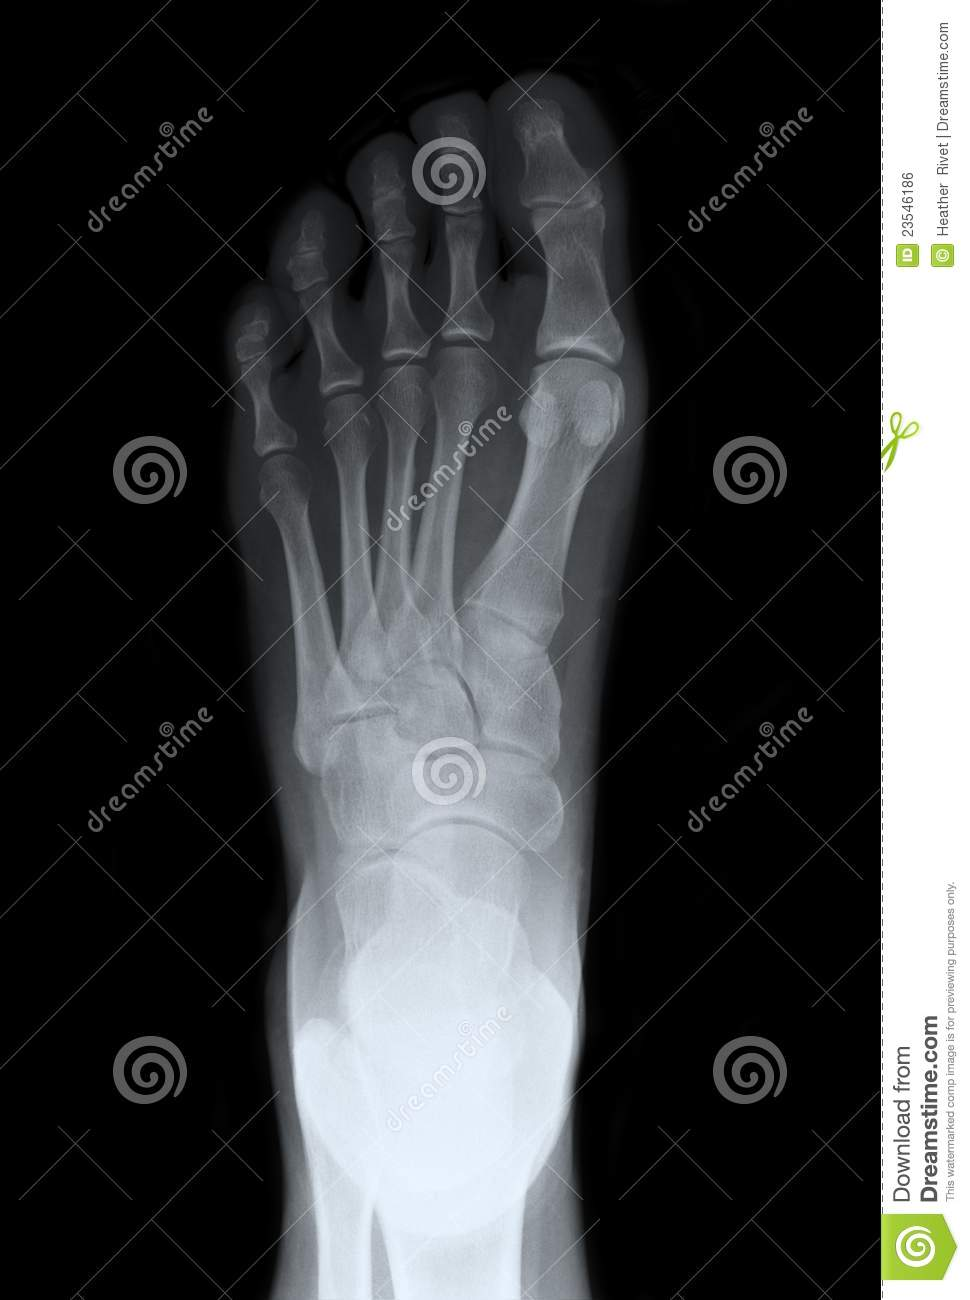 Left foot looking down on top of the foot, for medical diagnosis.